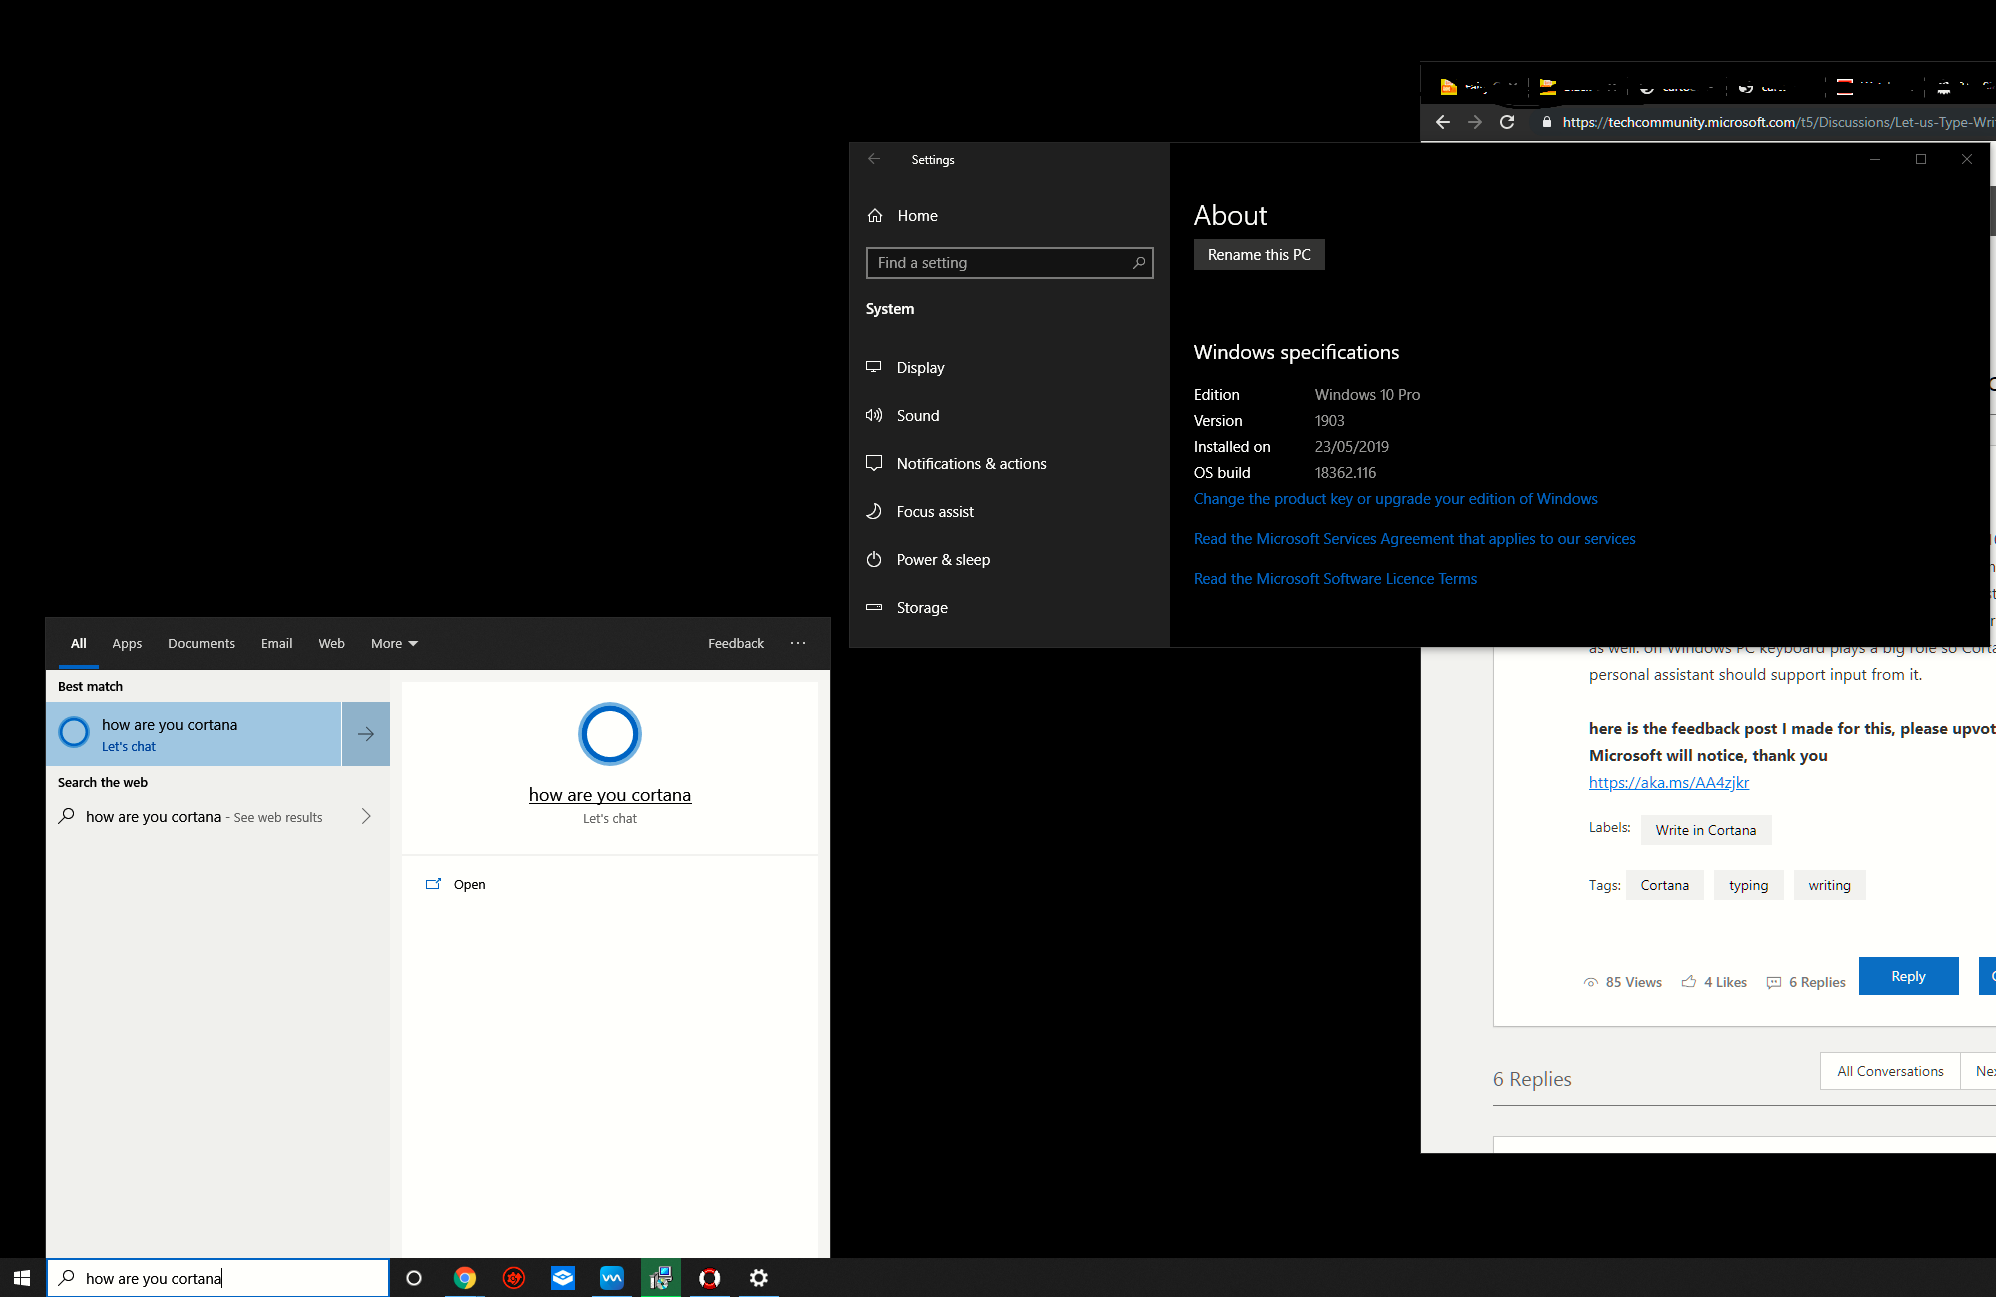 Let us Type/Write in Cortana in order to interact with her, rather